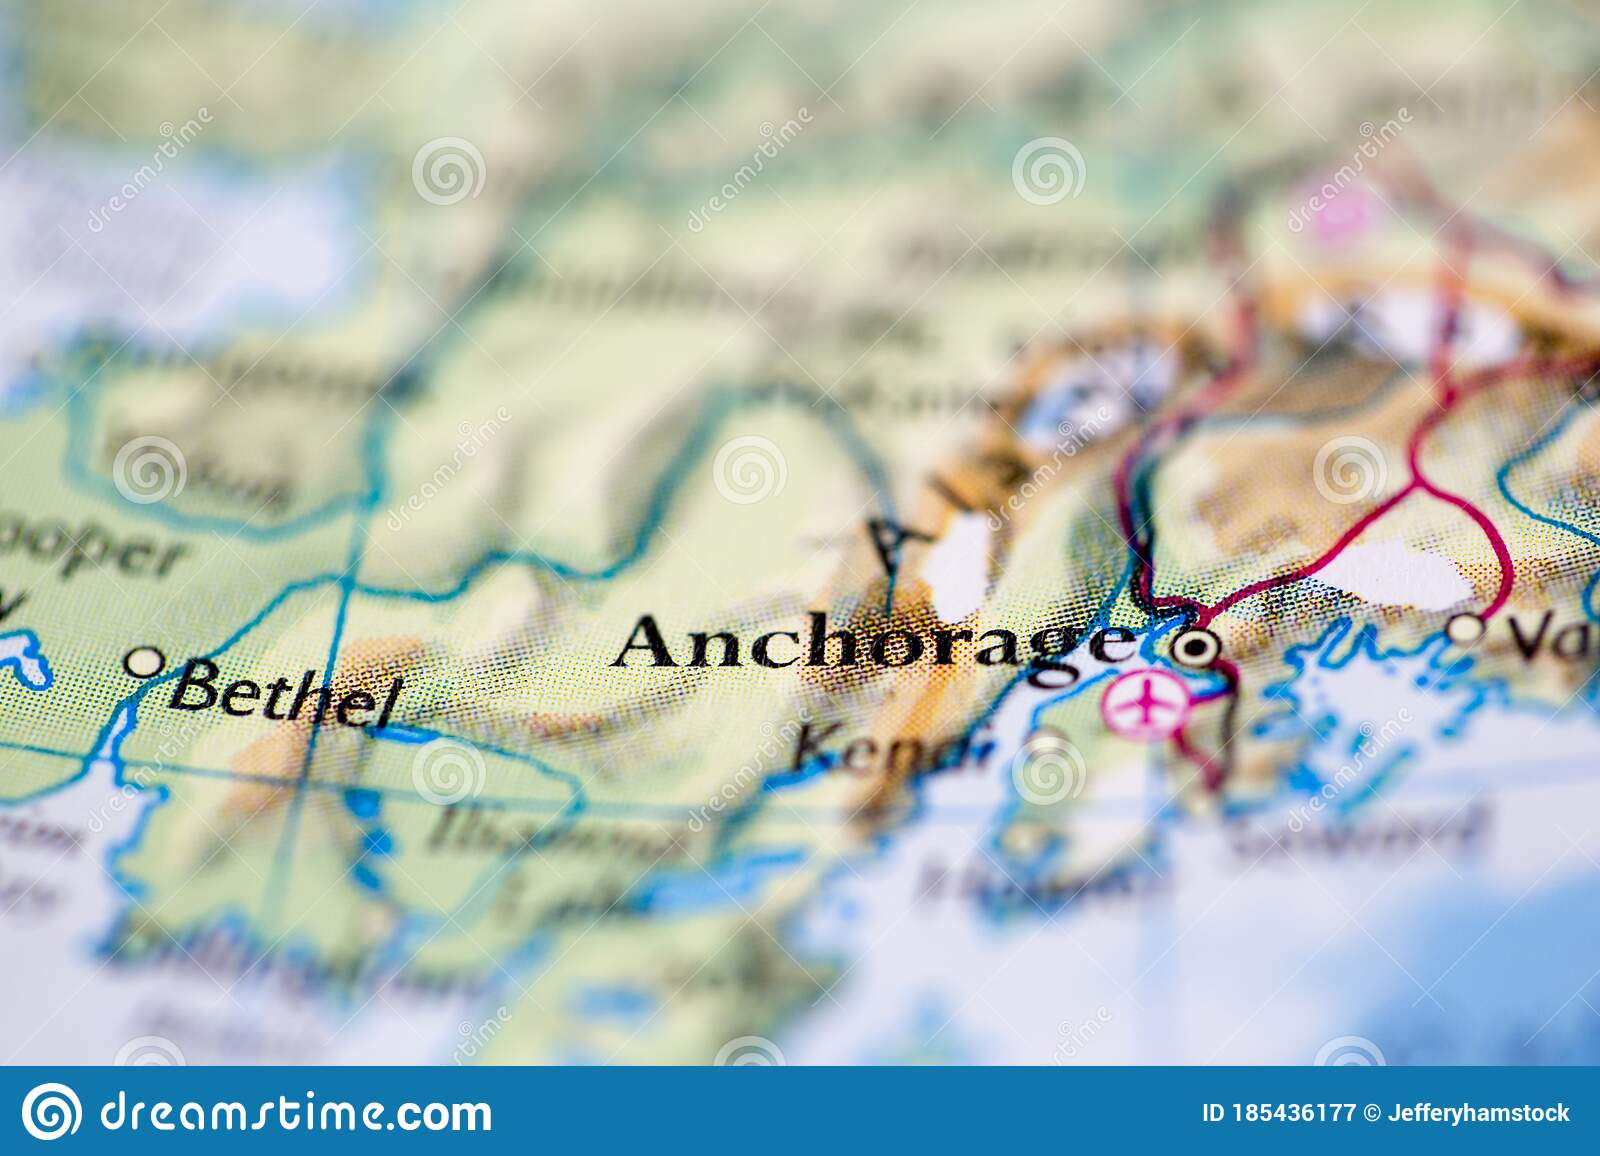 Picture of: Shallow Depth Of Field Focus On Geographical Map Location Of Anchorage City United States Of America Usa Continent On Atlas Stock Image Image Of Guide Journey 185436177